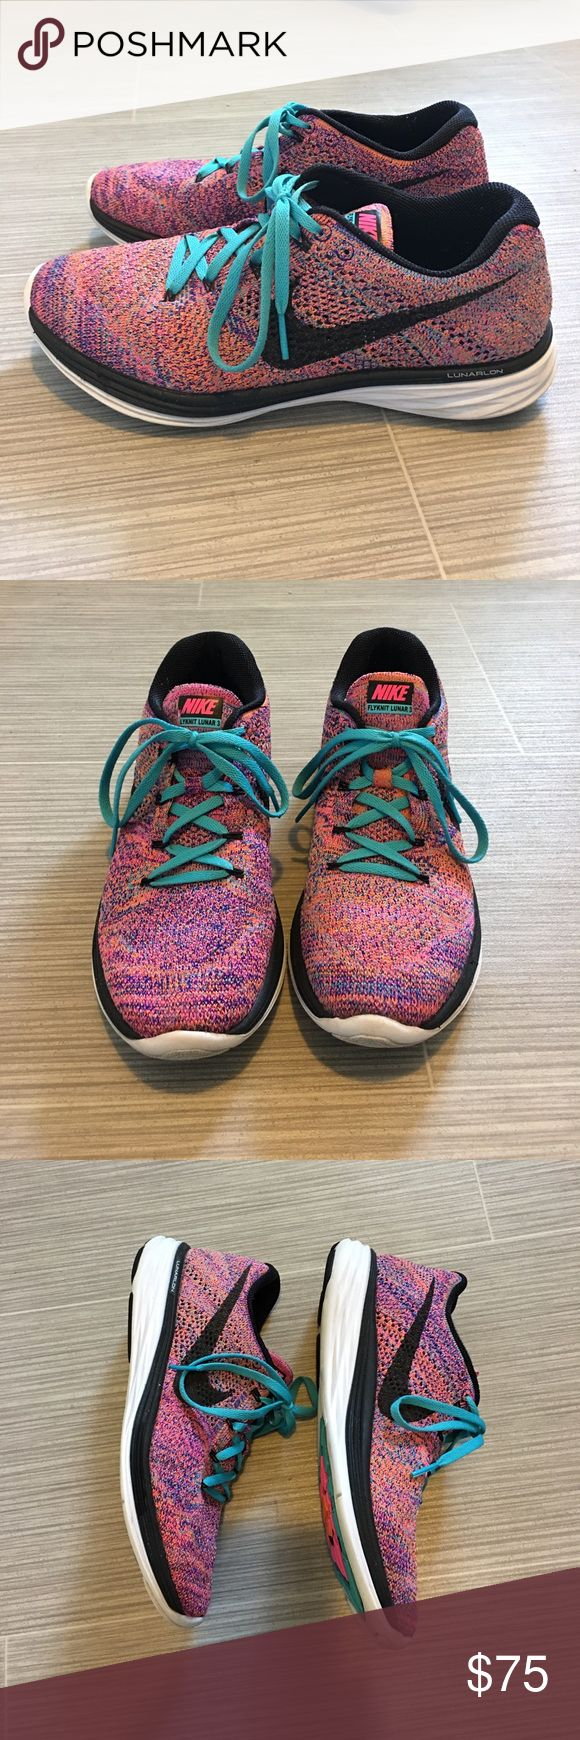 Nike Flyknit Lunar 3 size 9.5 Nike Flyknit Lunar 3 size 9.5. Super comfy, worn a handful of times. Very good condition. Nike Shoes Athletic Shoes